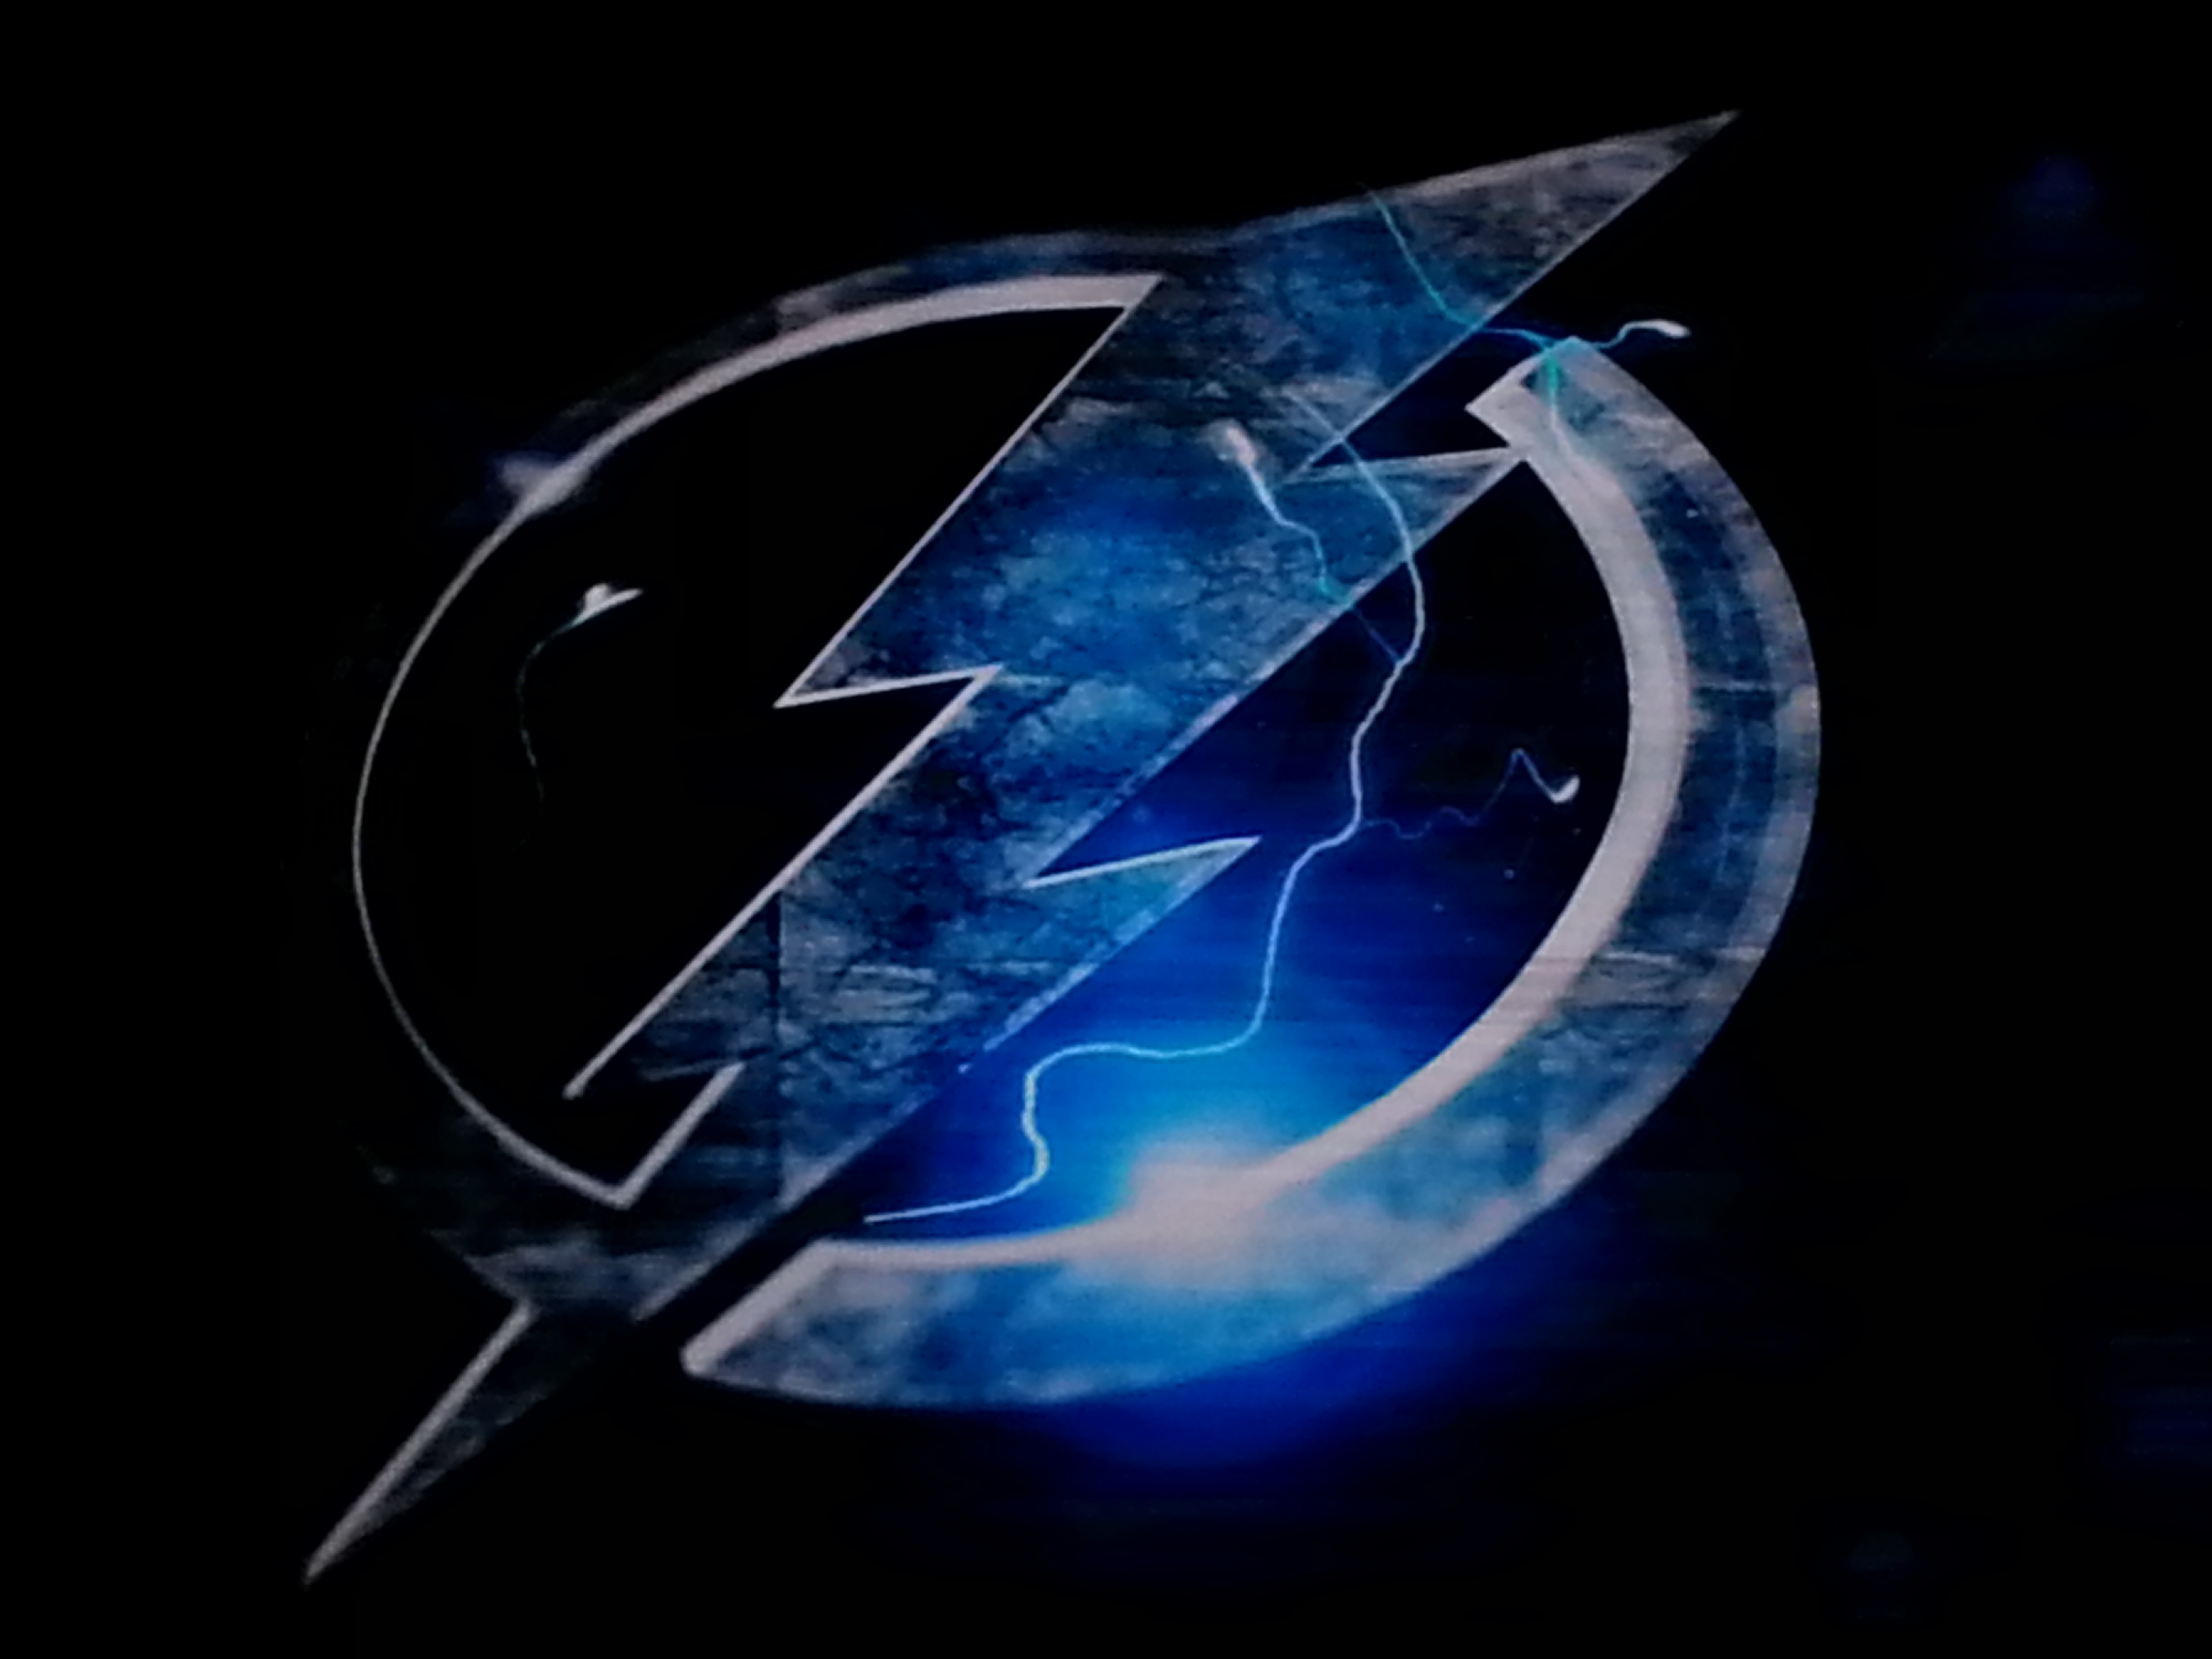 Tampa Bay Lightning 3264x2448